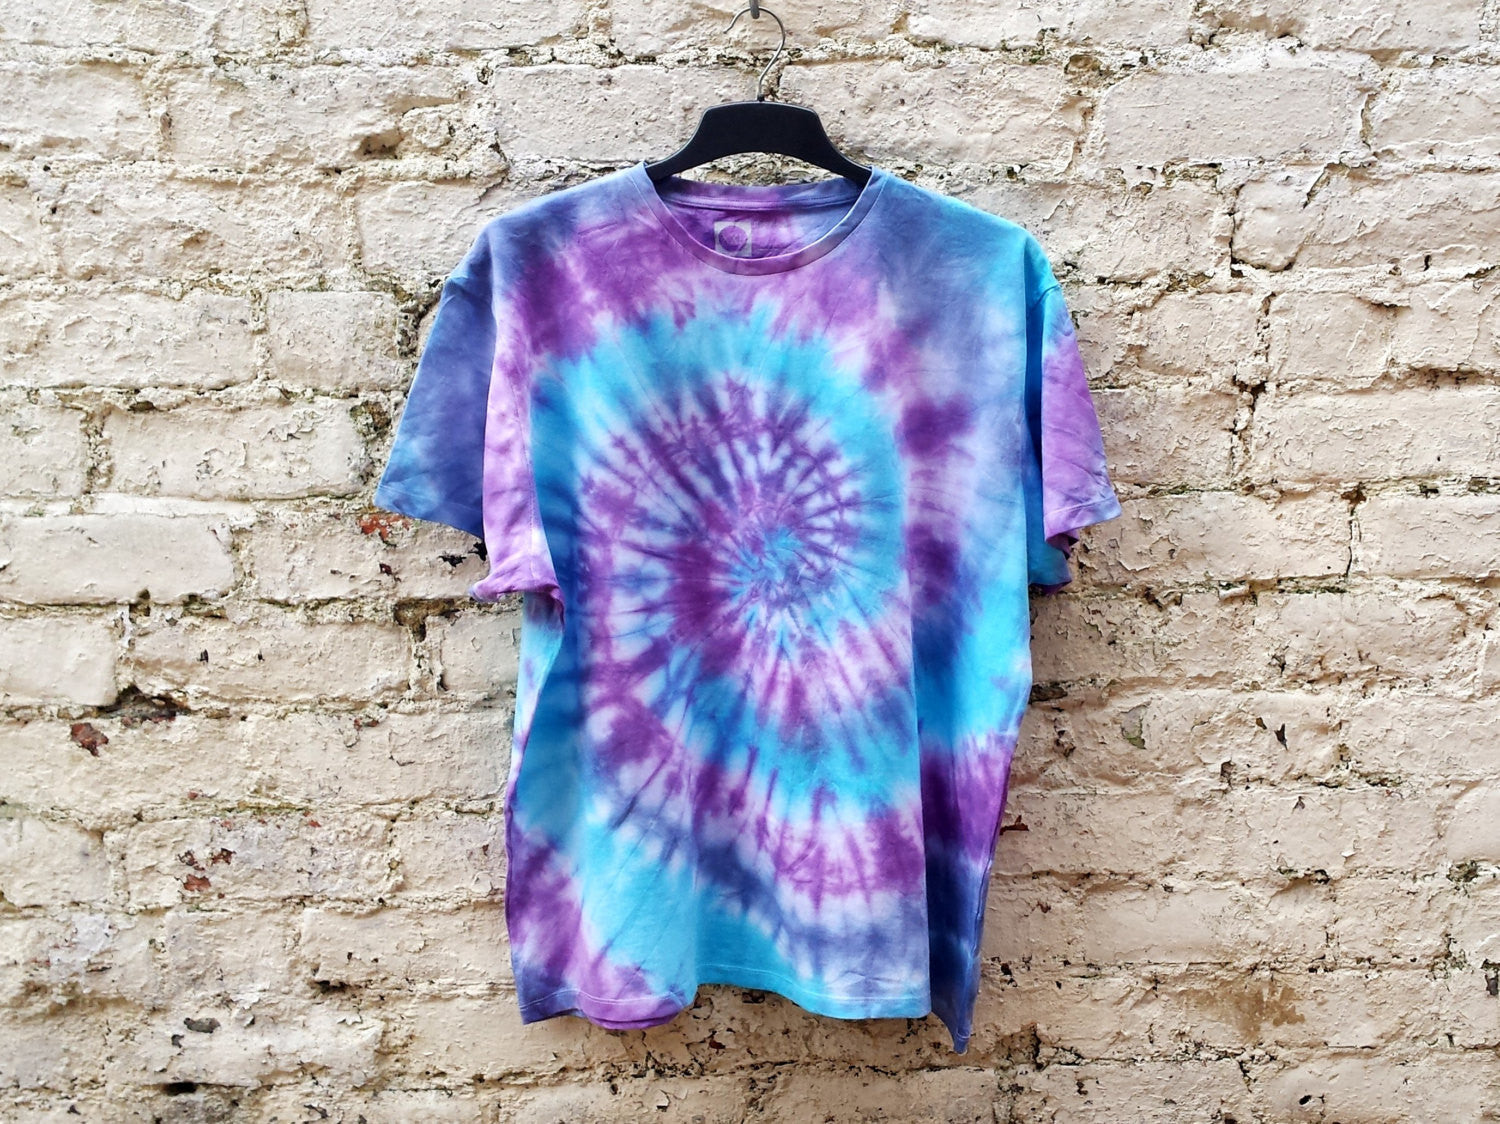 Men's Tie Dye Shirt organic cotton